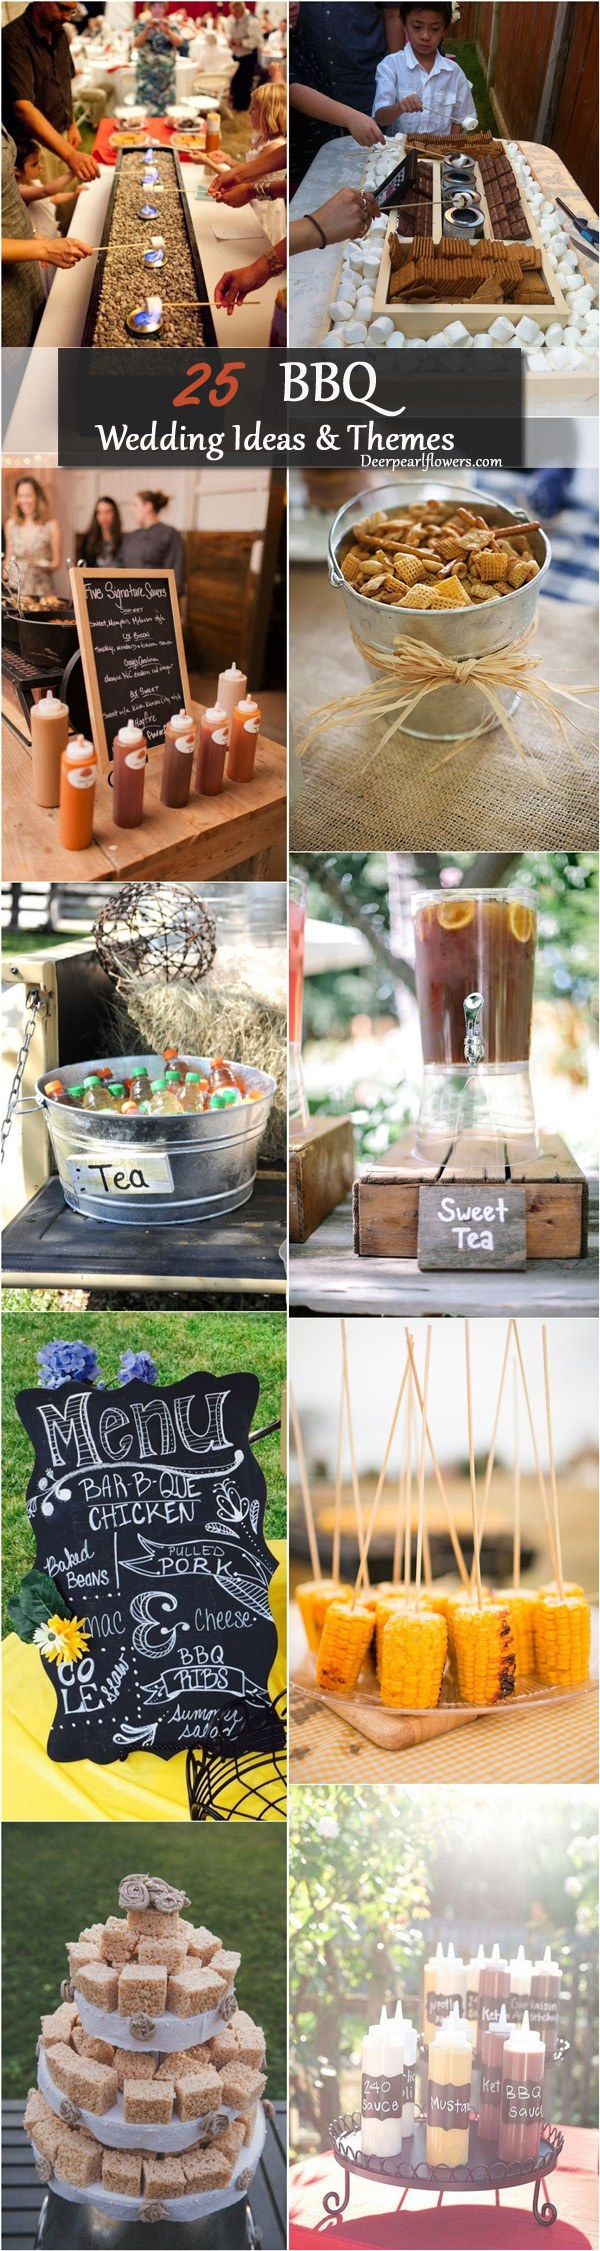 15.SIMPHOME.COM top 25 rustic barbecue bbq wedding ideas deer pearl flowers